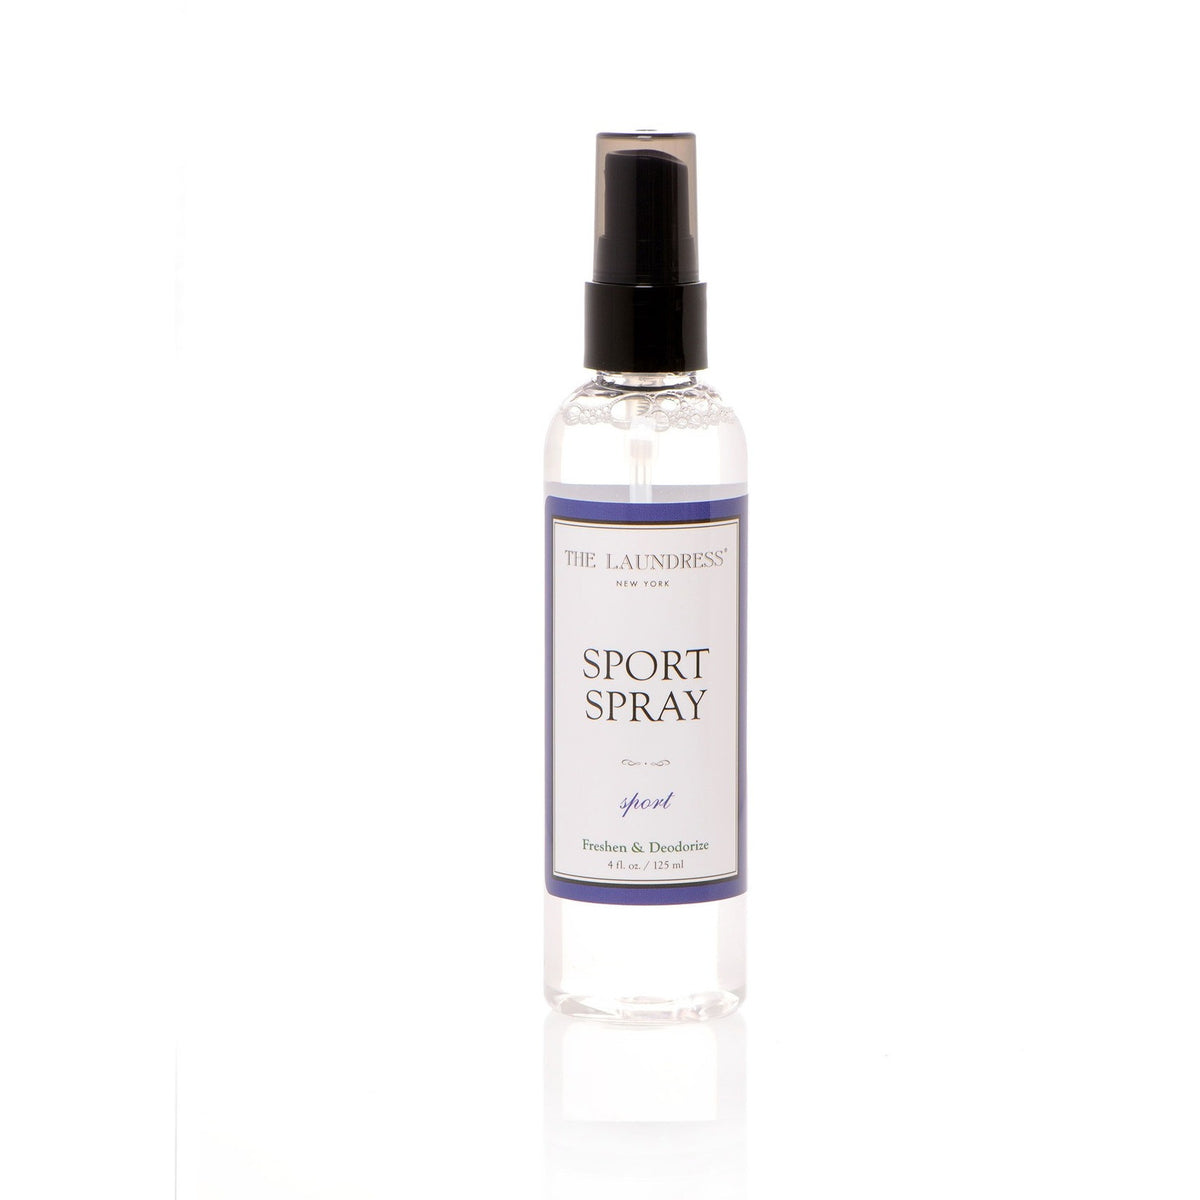 the laundress | sport spray - KISS AND MAKEUP